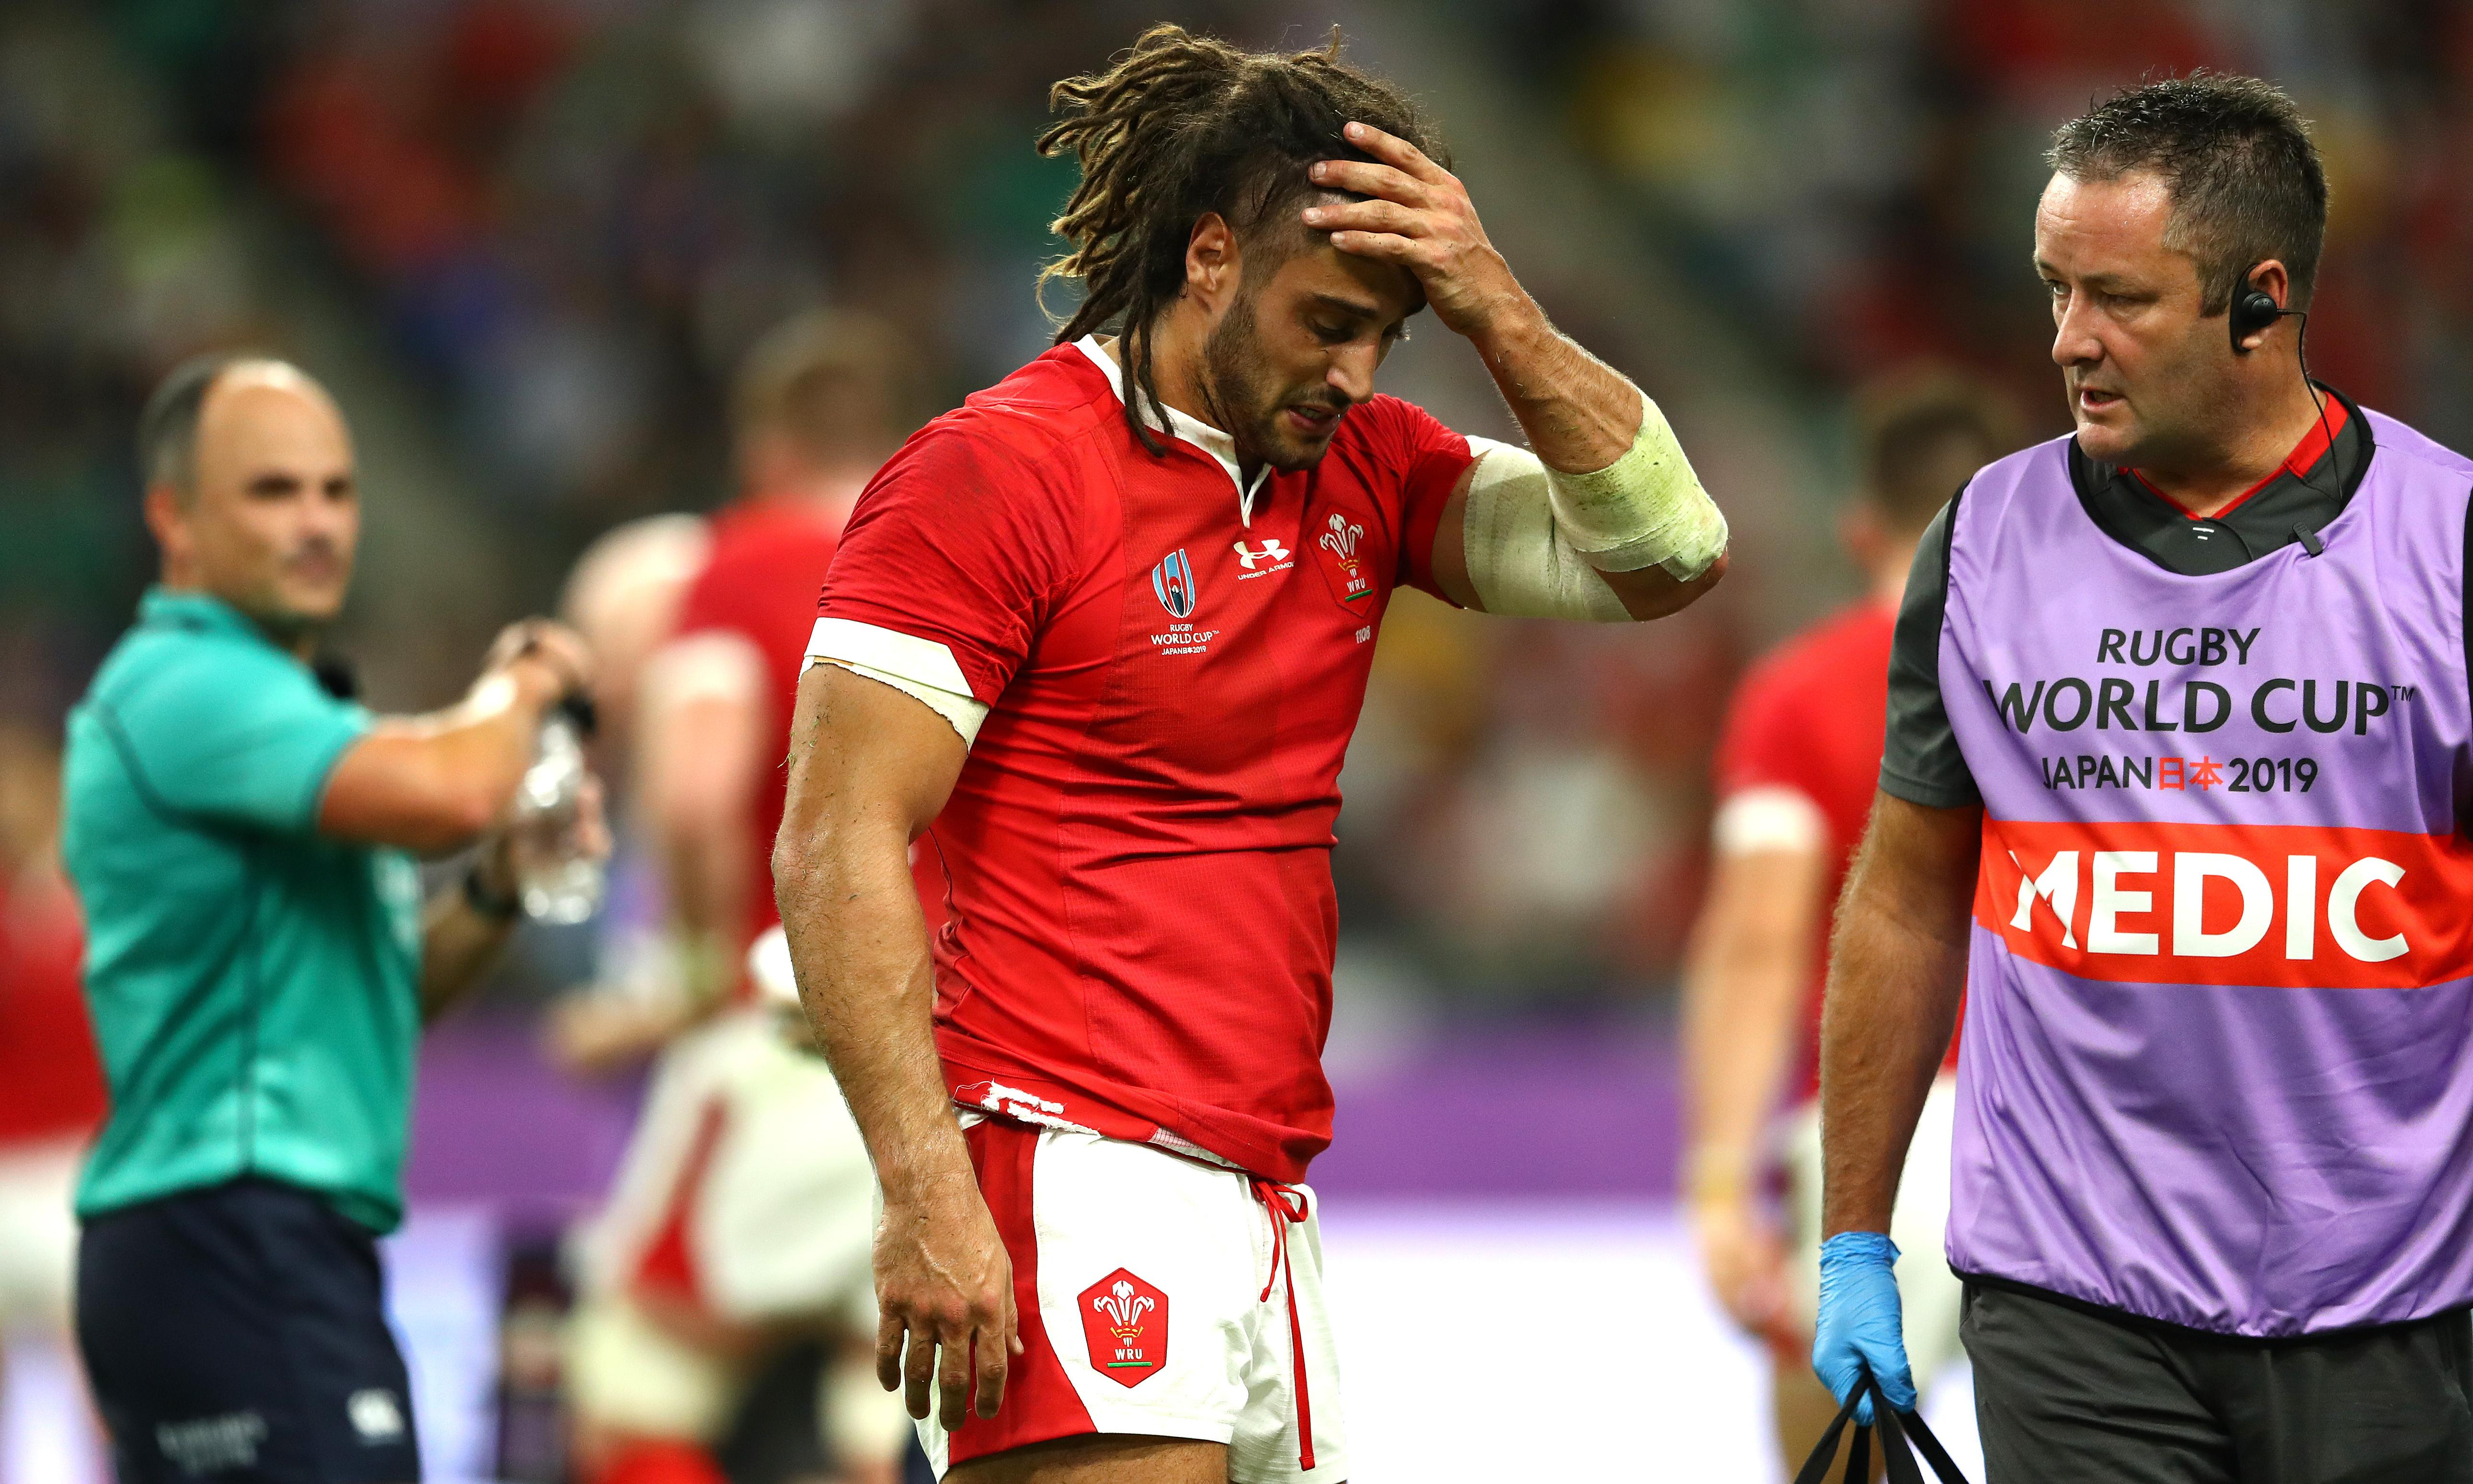 Wales back-rower Josh Navidi's Rugby World Cup ended by hamstring injury